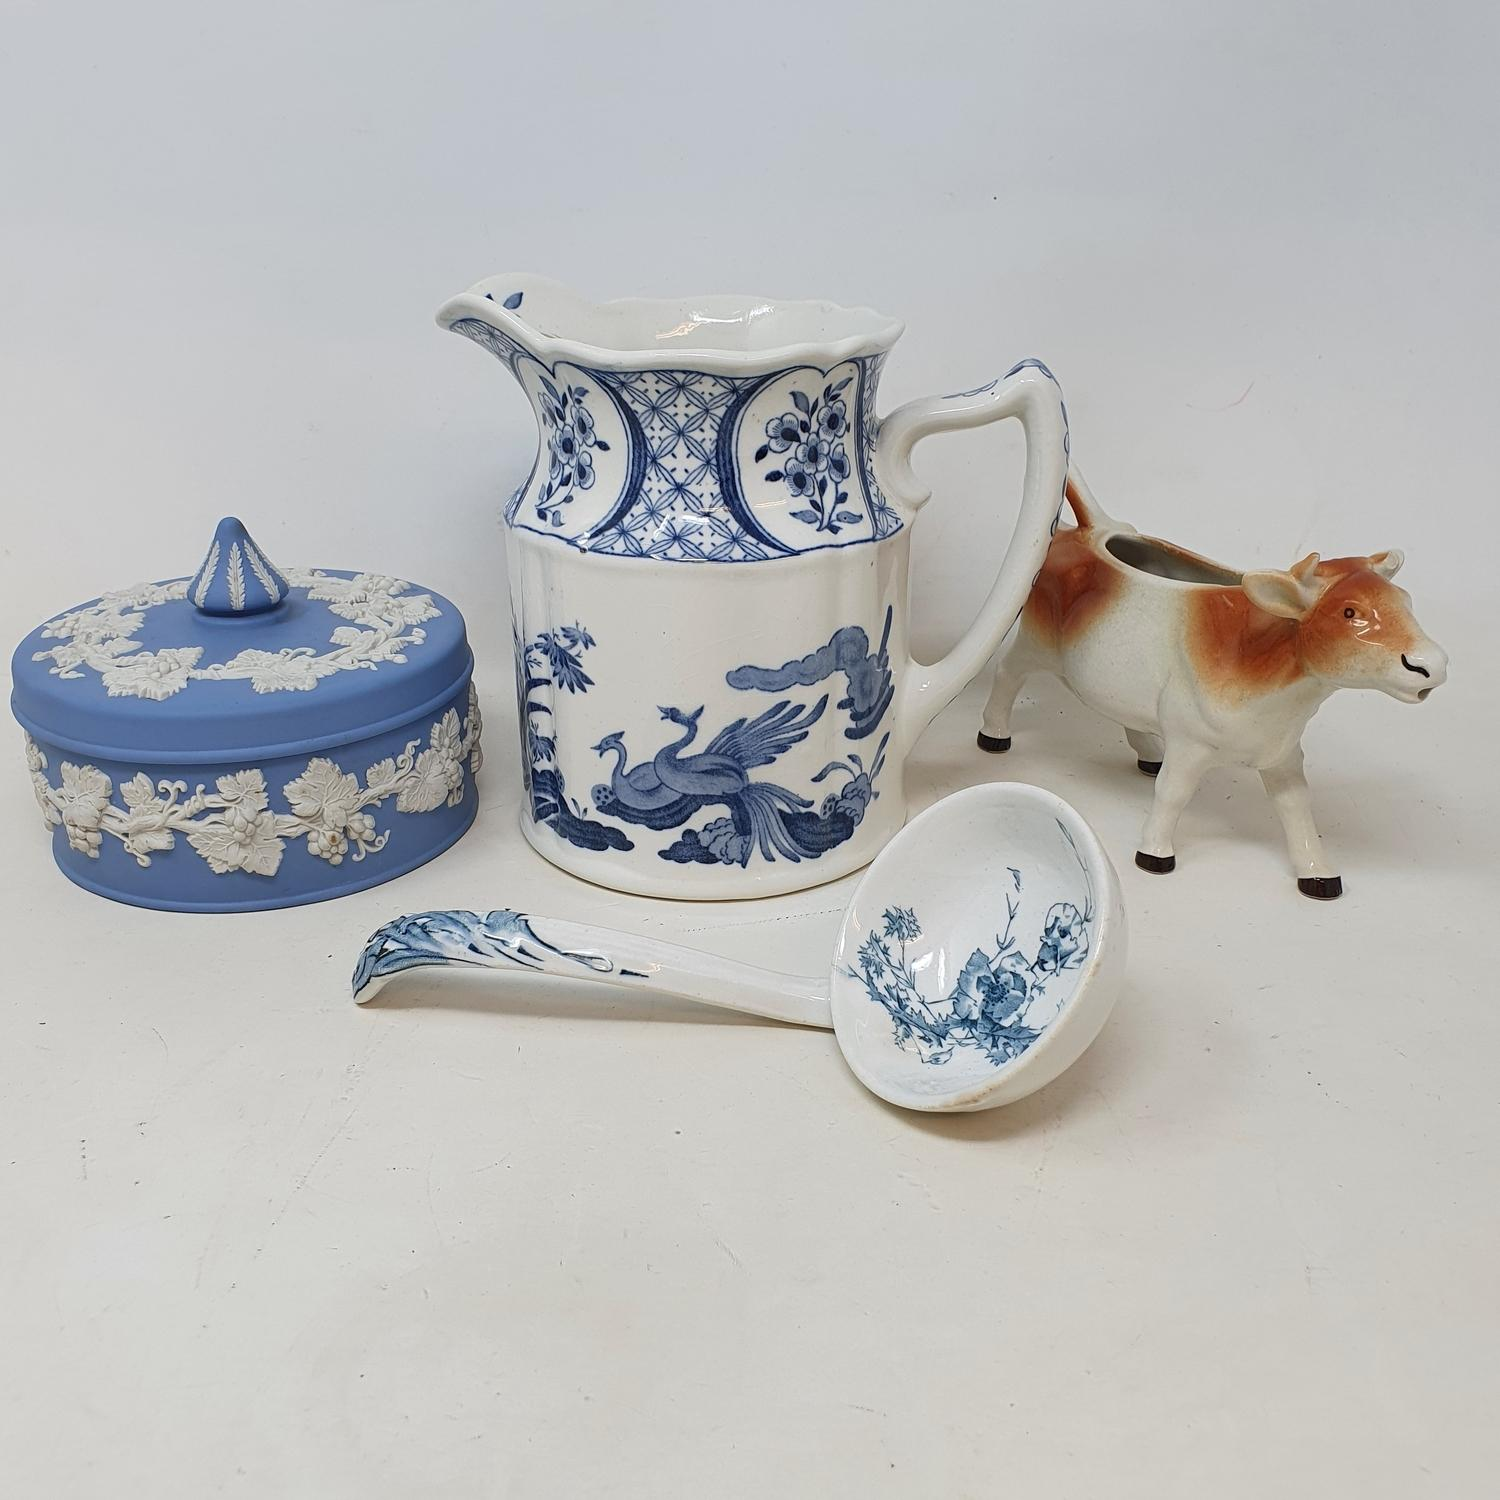 A Staffordshire cow creamer, and other ceramics (2 boxes)